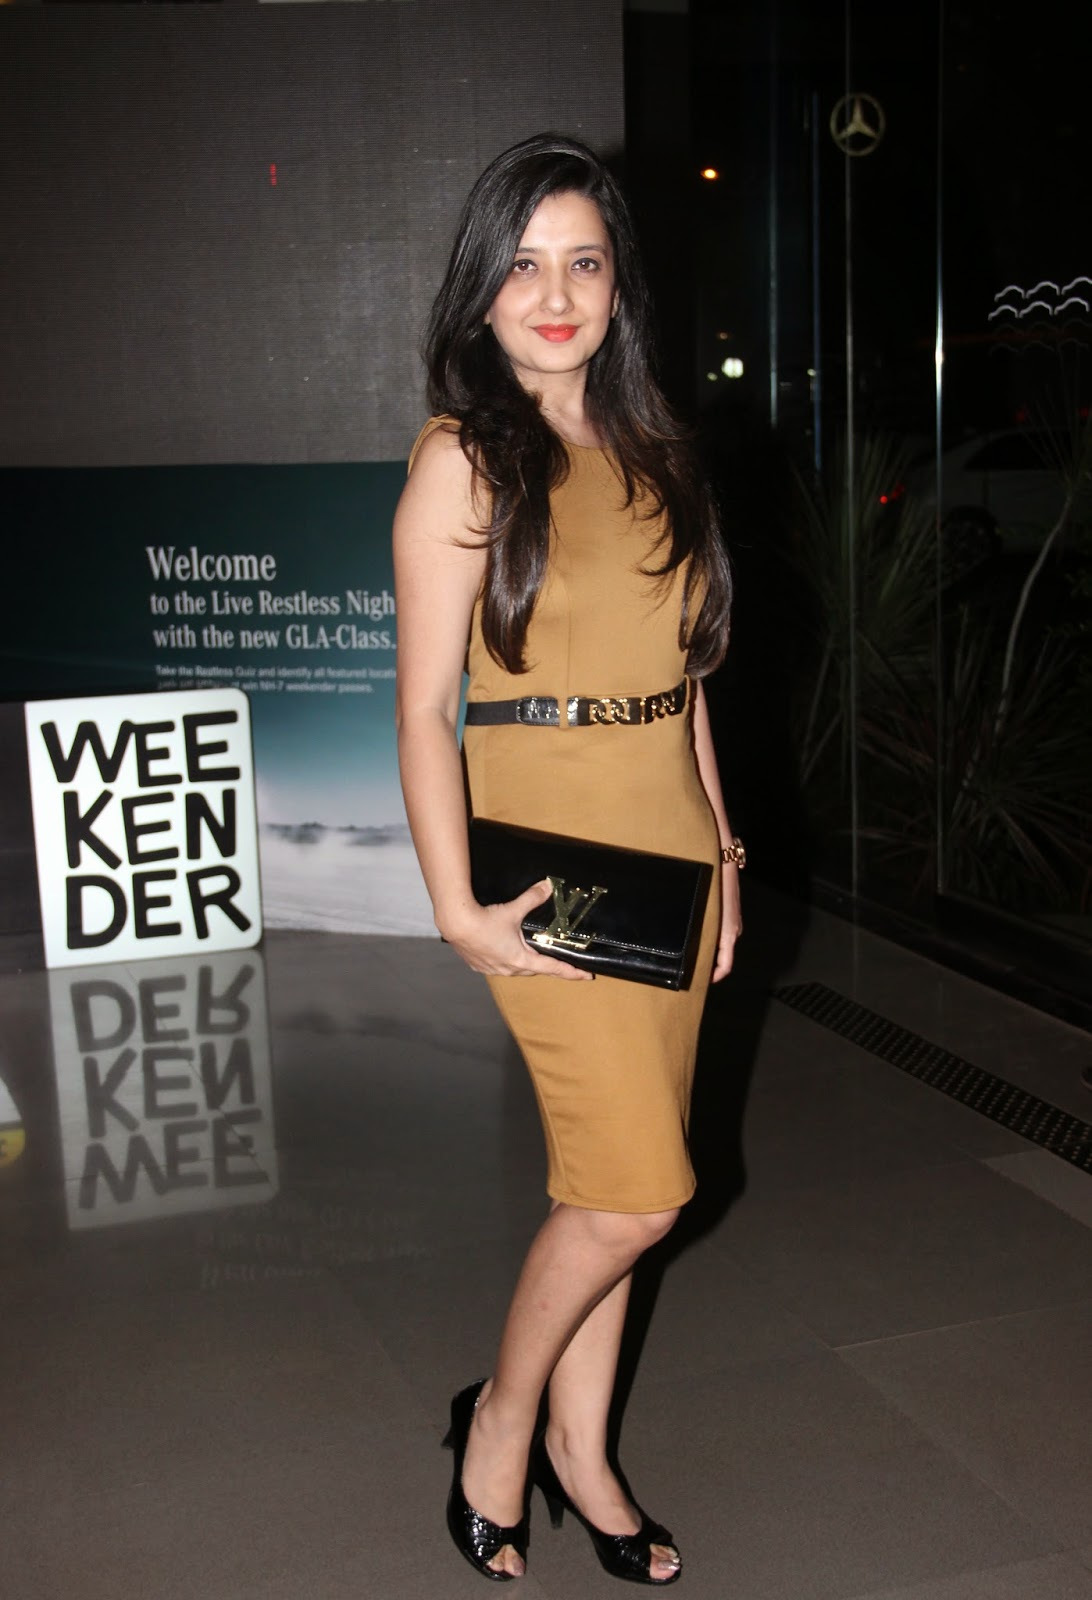 Amy Billimoria at the Mercedes Benz GLA-Class Preview Event